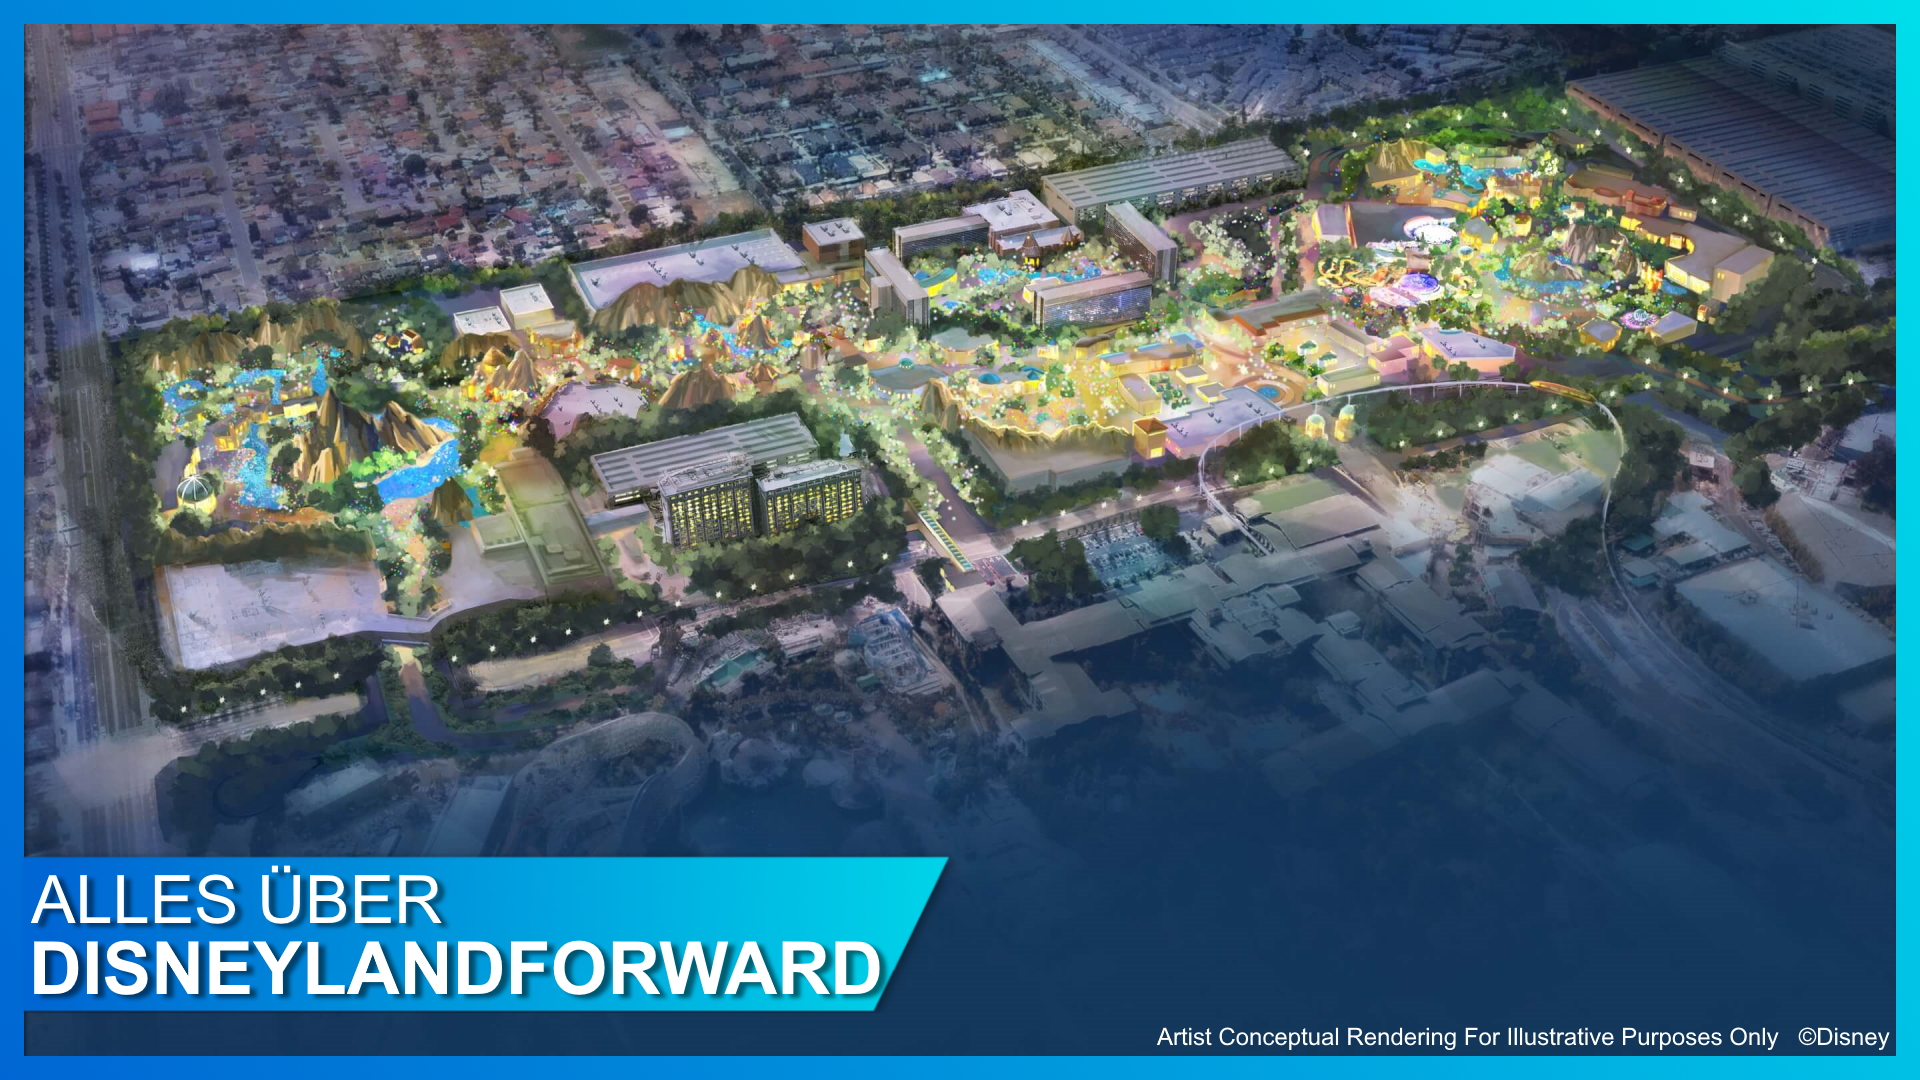 DisneylandForward Rendering